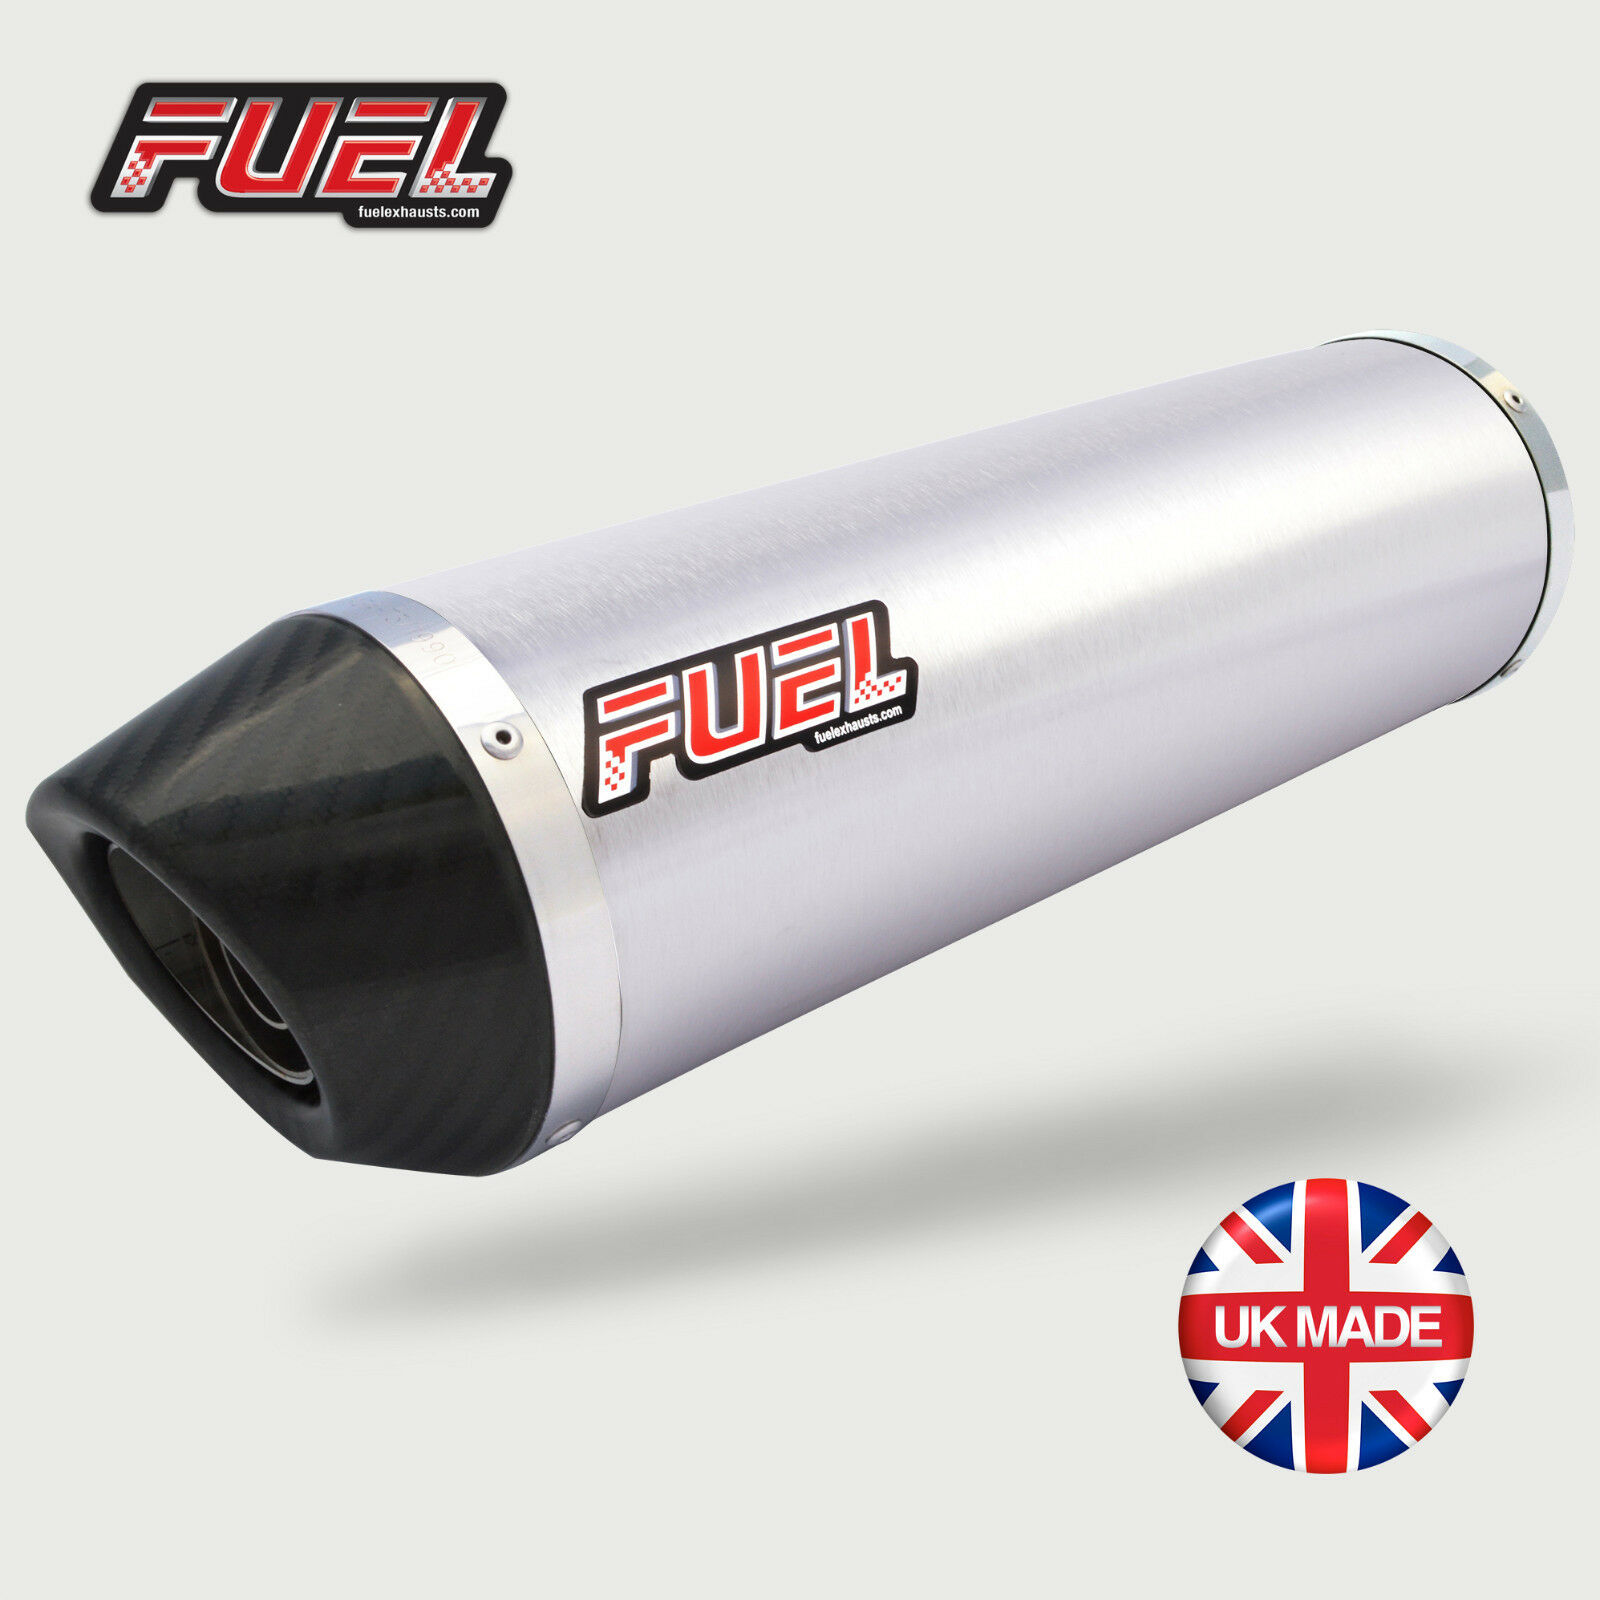 Triumph Daytona 600 Diablo Brushed S S Round Mini UK approved exhaust